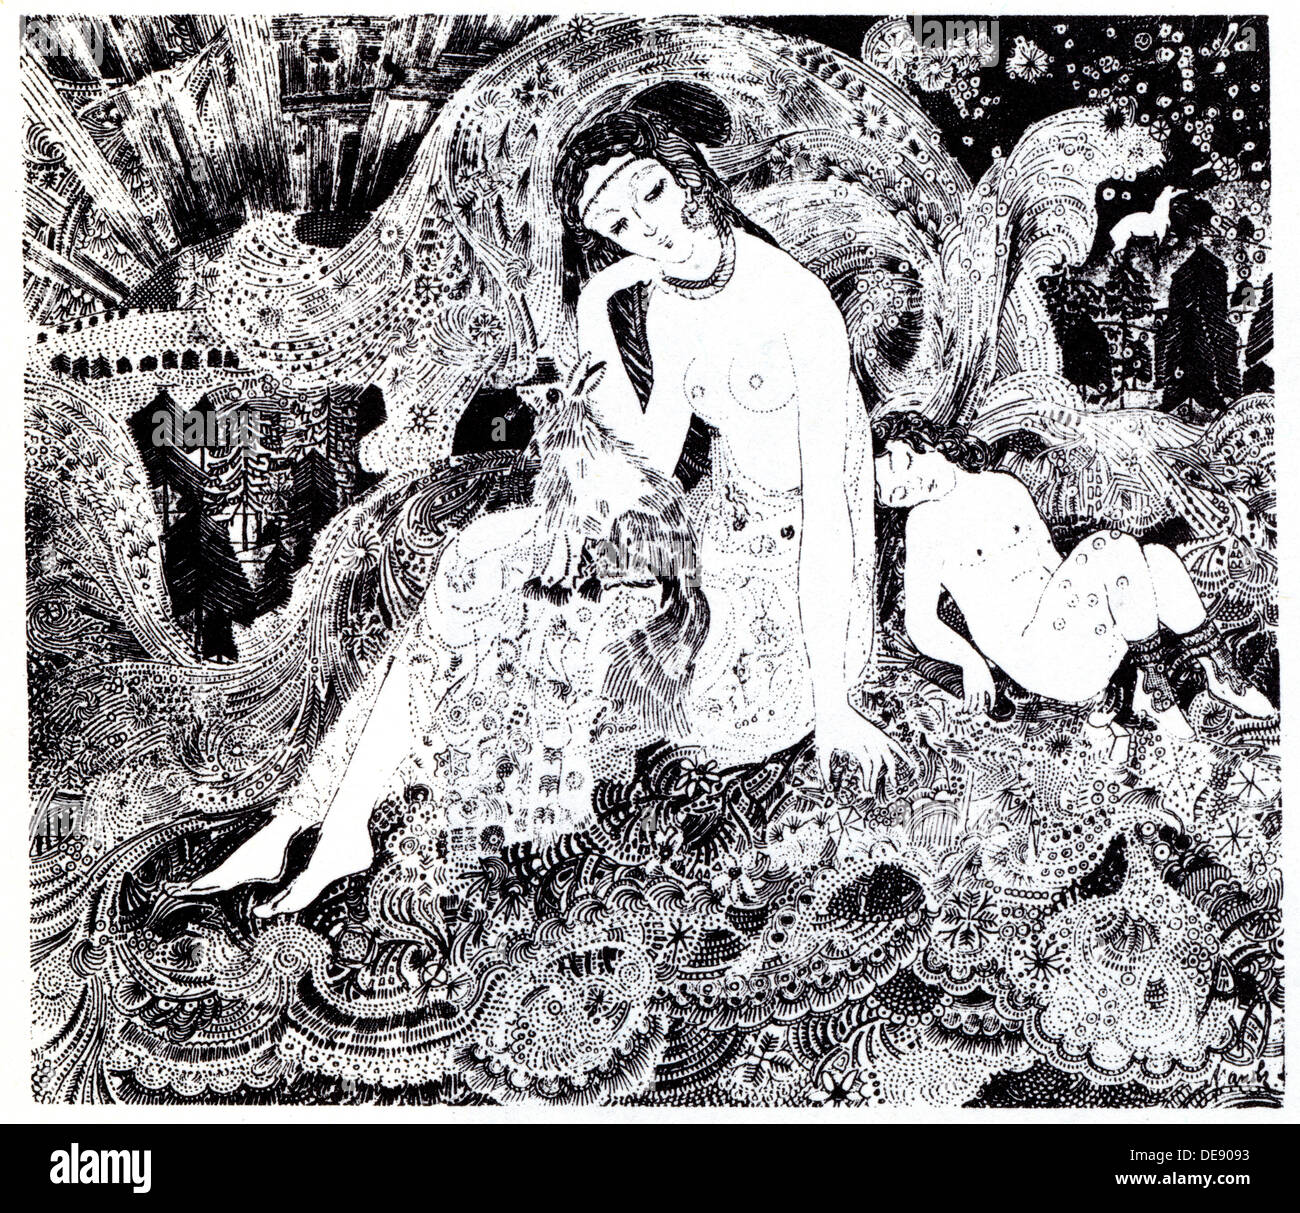 The Snow Queen. Symbolist magazine Vesy (The Balance), 1908. Artist: Arapov, Anatoli Afanasyevich (1876-1949) - Stock Image